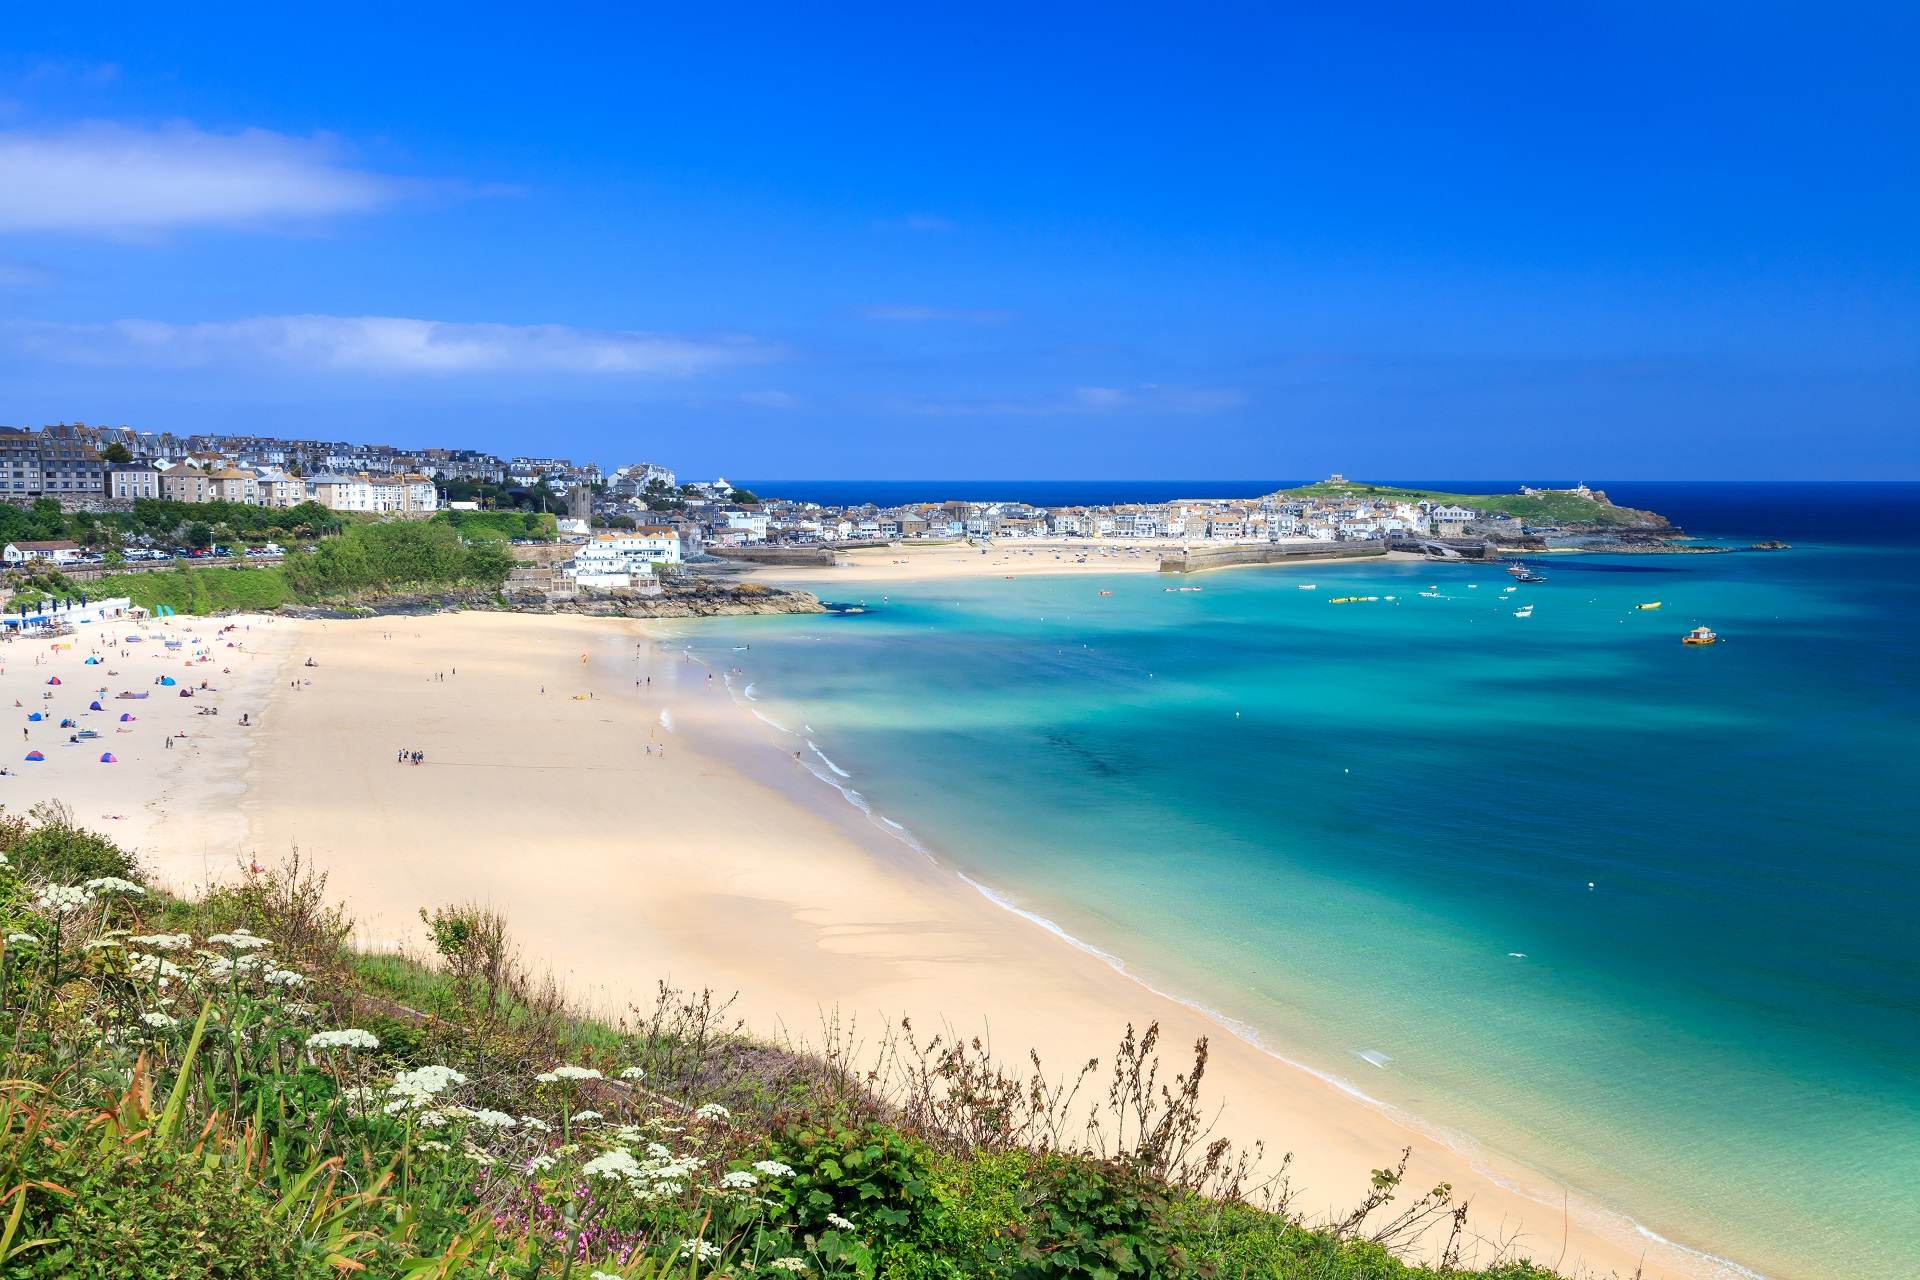 Porthminster Beach in St. Ives, England